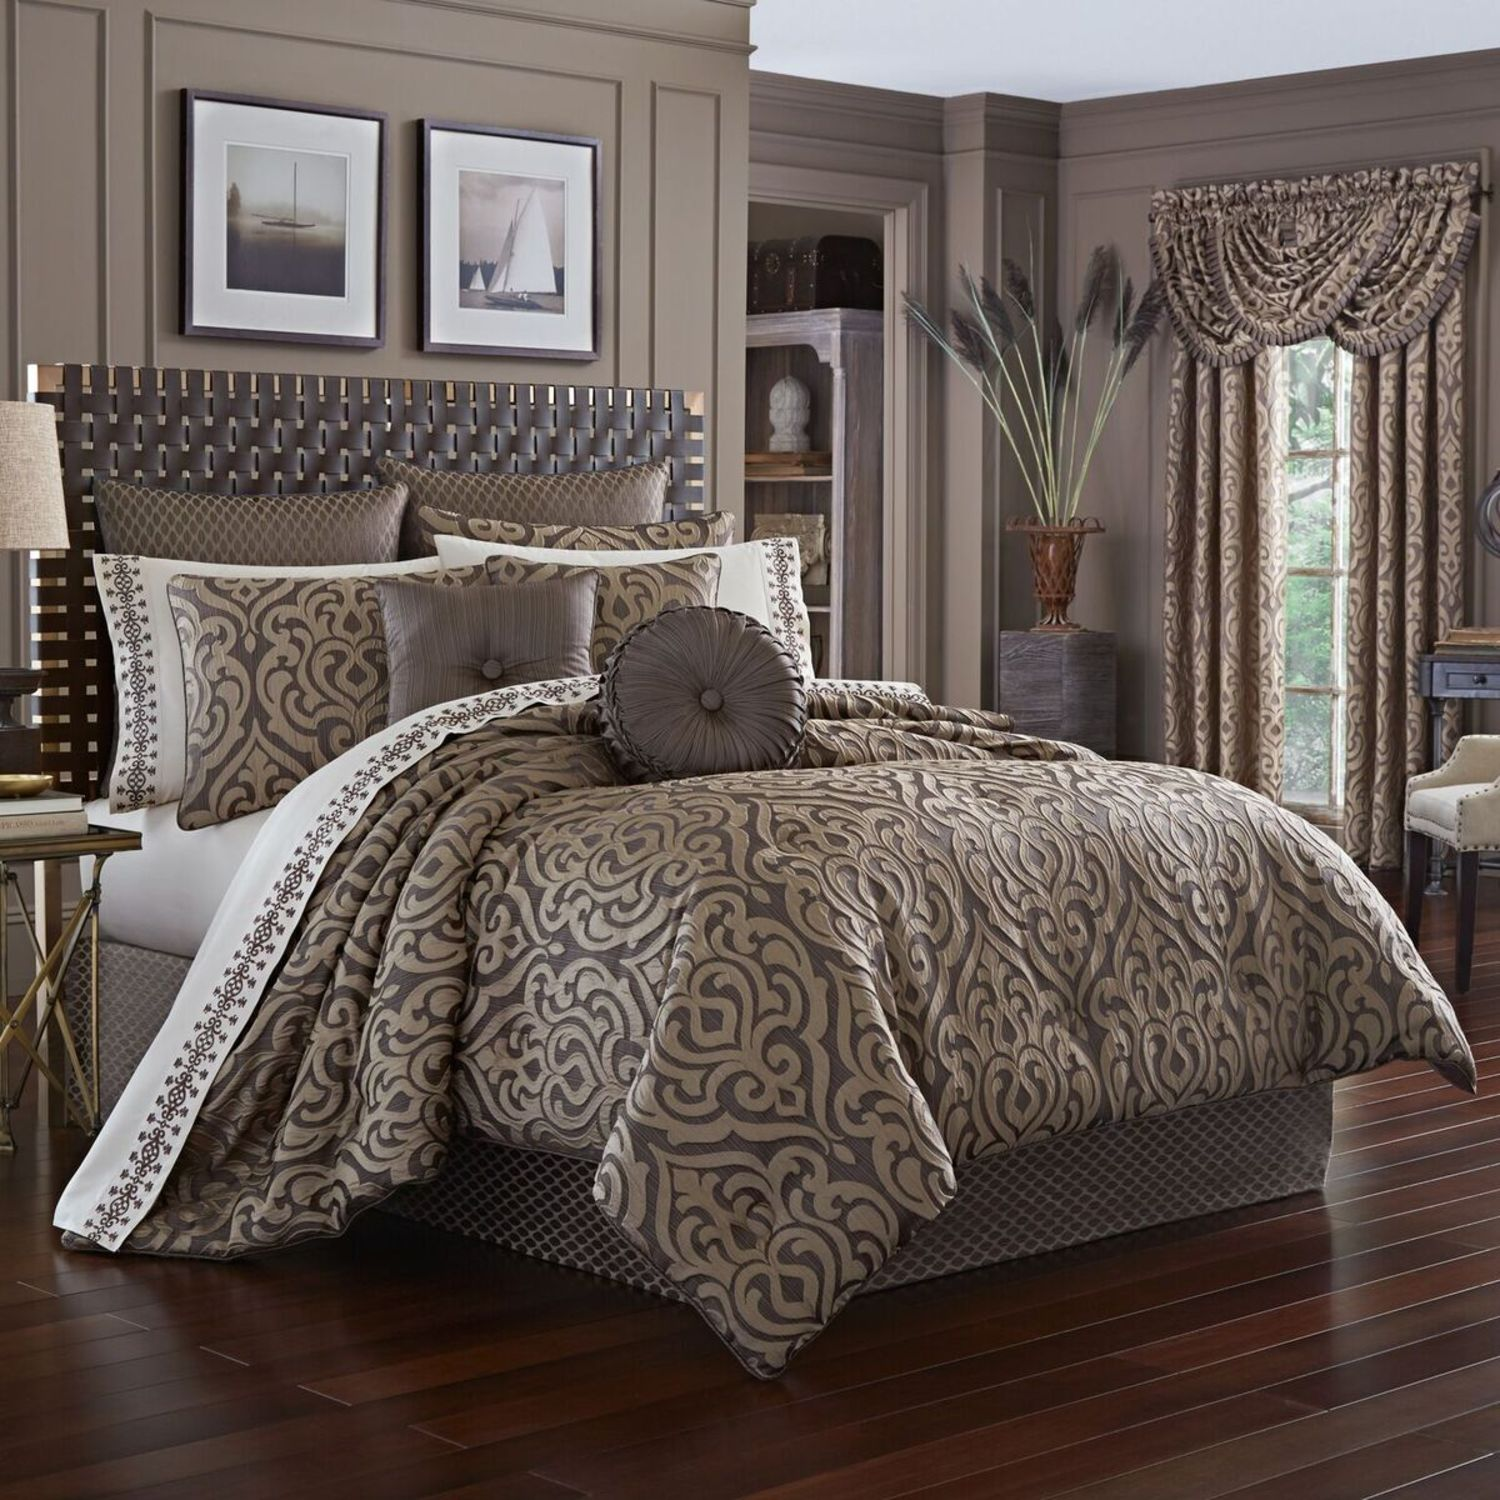 new images soho wayfair piece hotel comforter york set gallery reviews